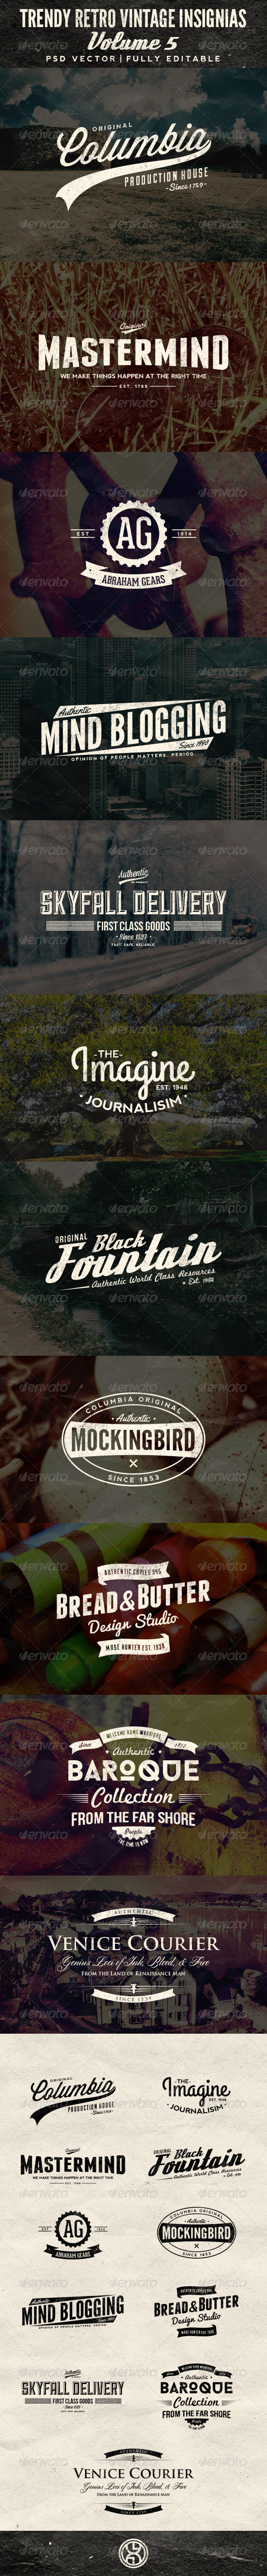 GraphicRiver Trendy Retro Vintage Insignias Volume 5 7371222